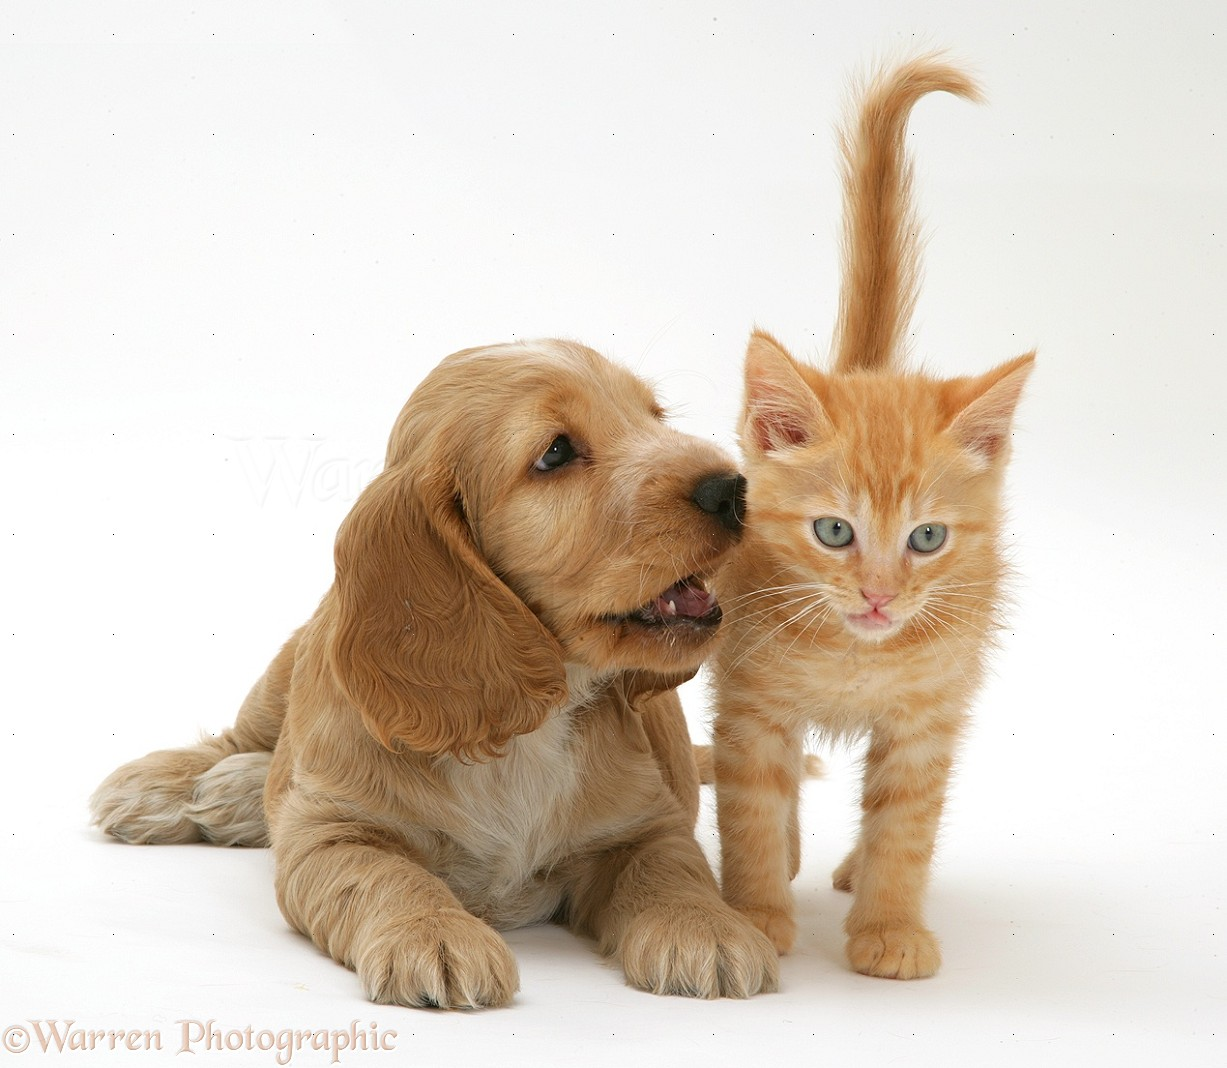 Pets  Golden Cocker Spaniel puppy and ginger kitten photo - WP31093Golden Cocker Puppies